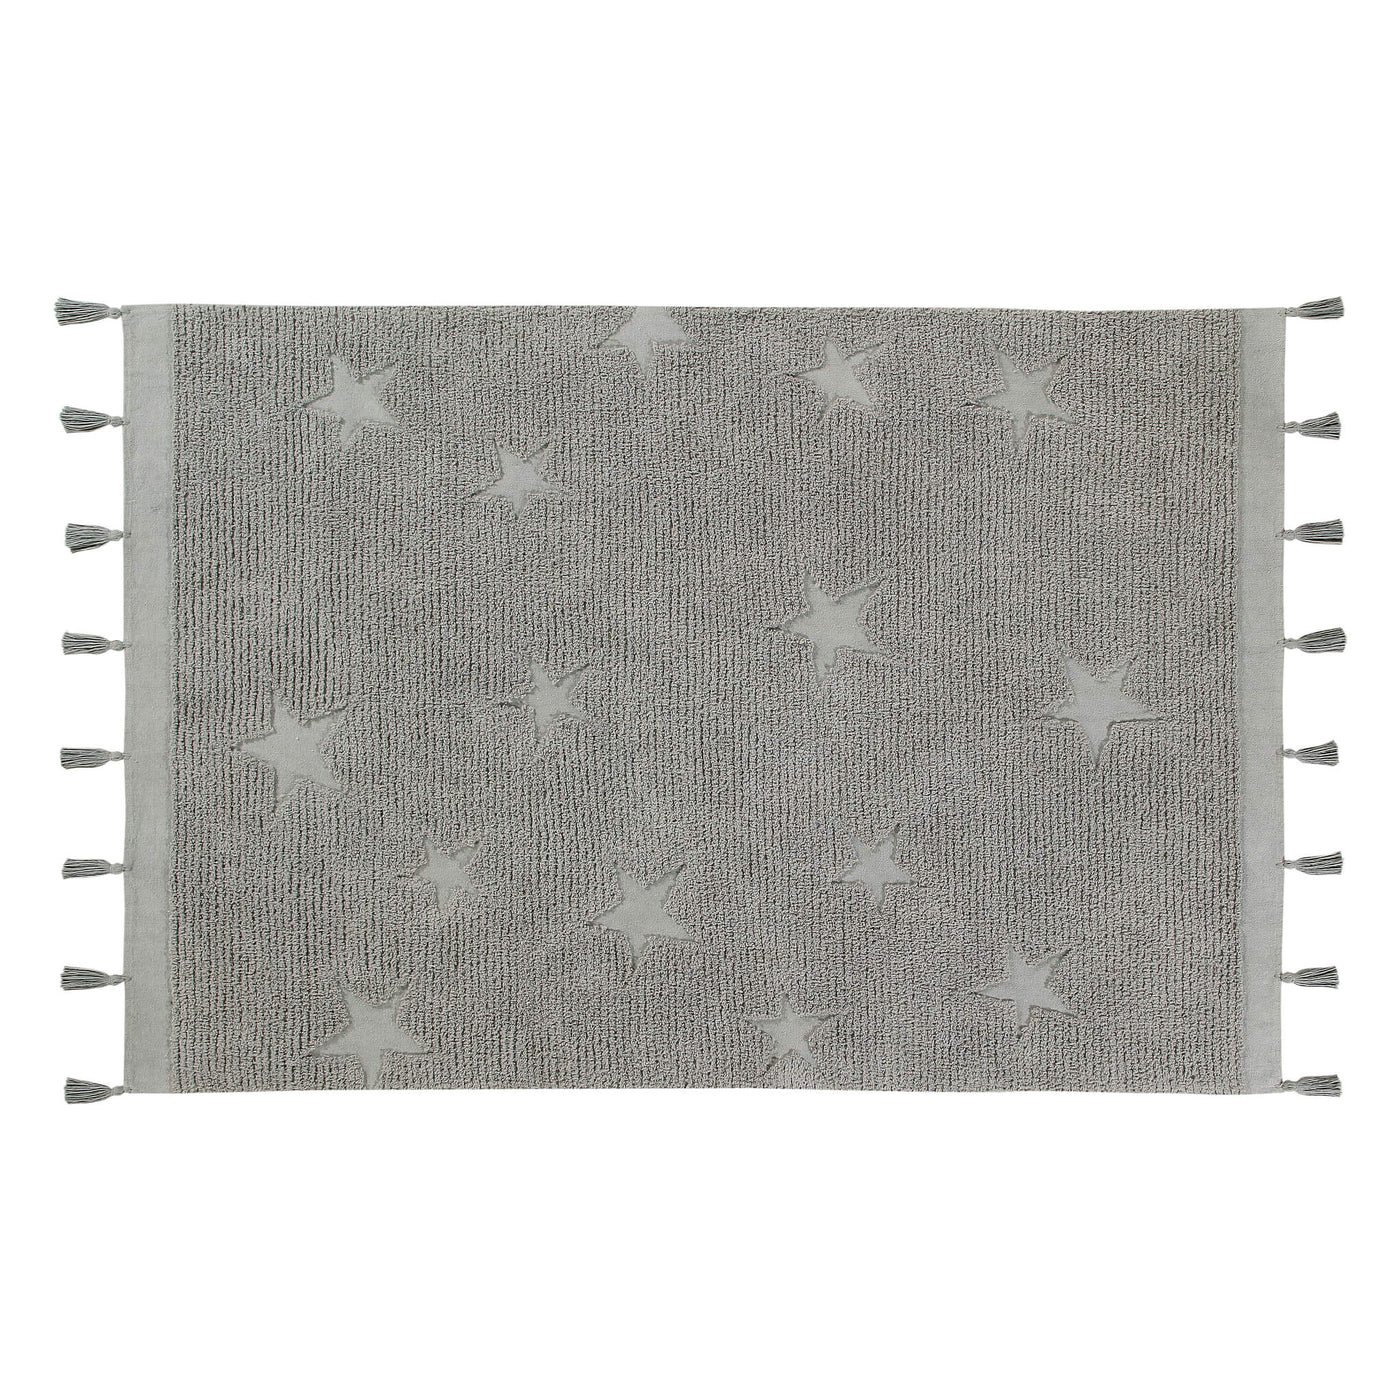 Hippy Stars Washable Rug - Grey